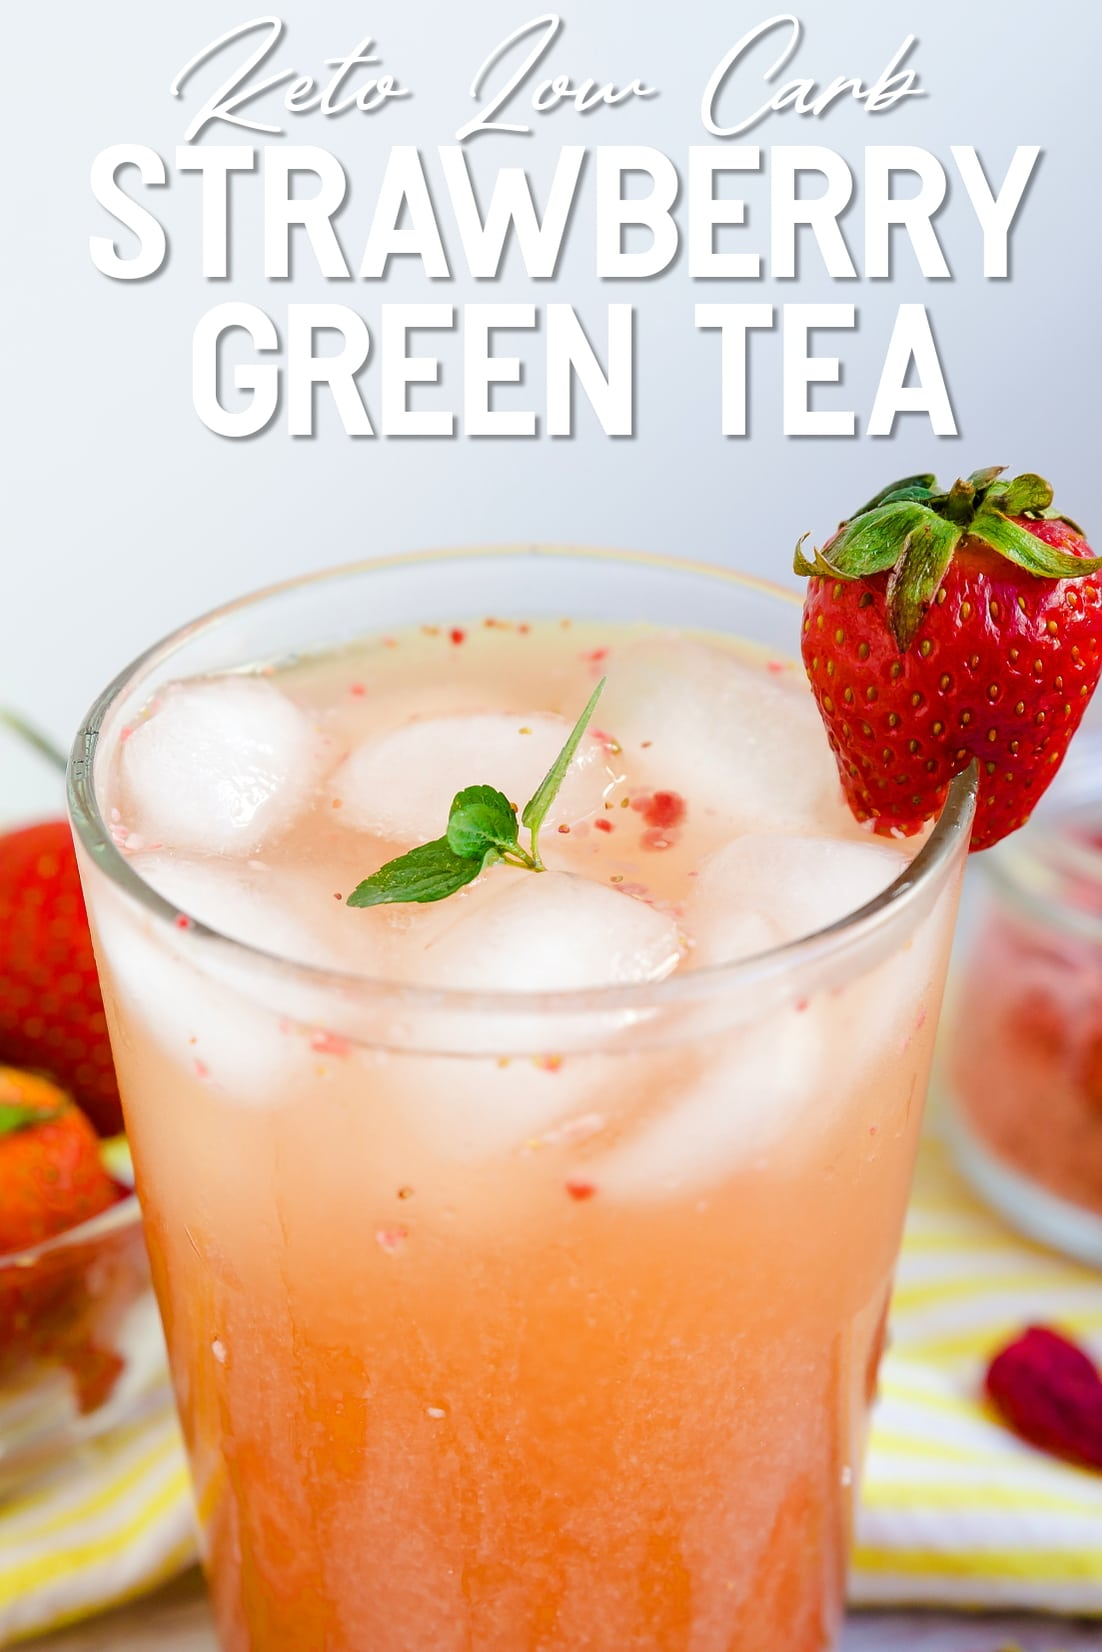 Keto Strawberry Iced Green Tea served in a glass tumbler with a strawberry